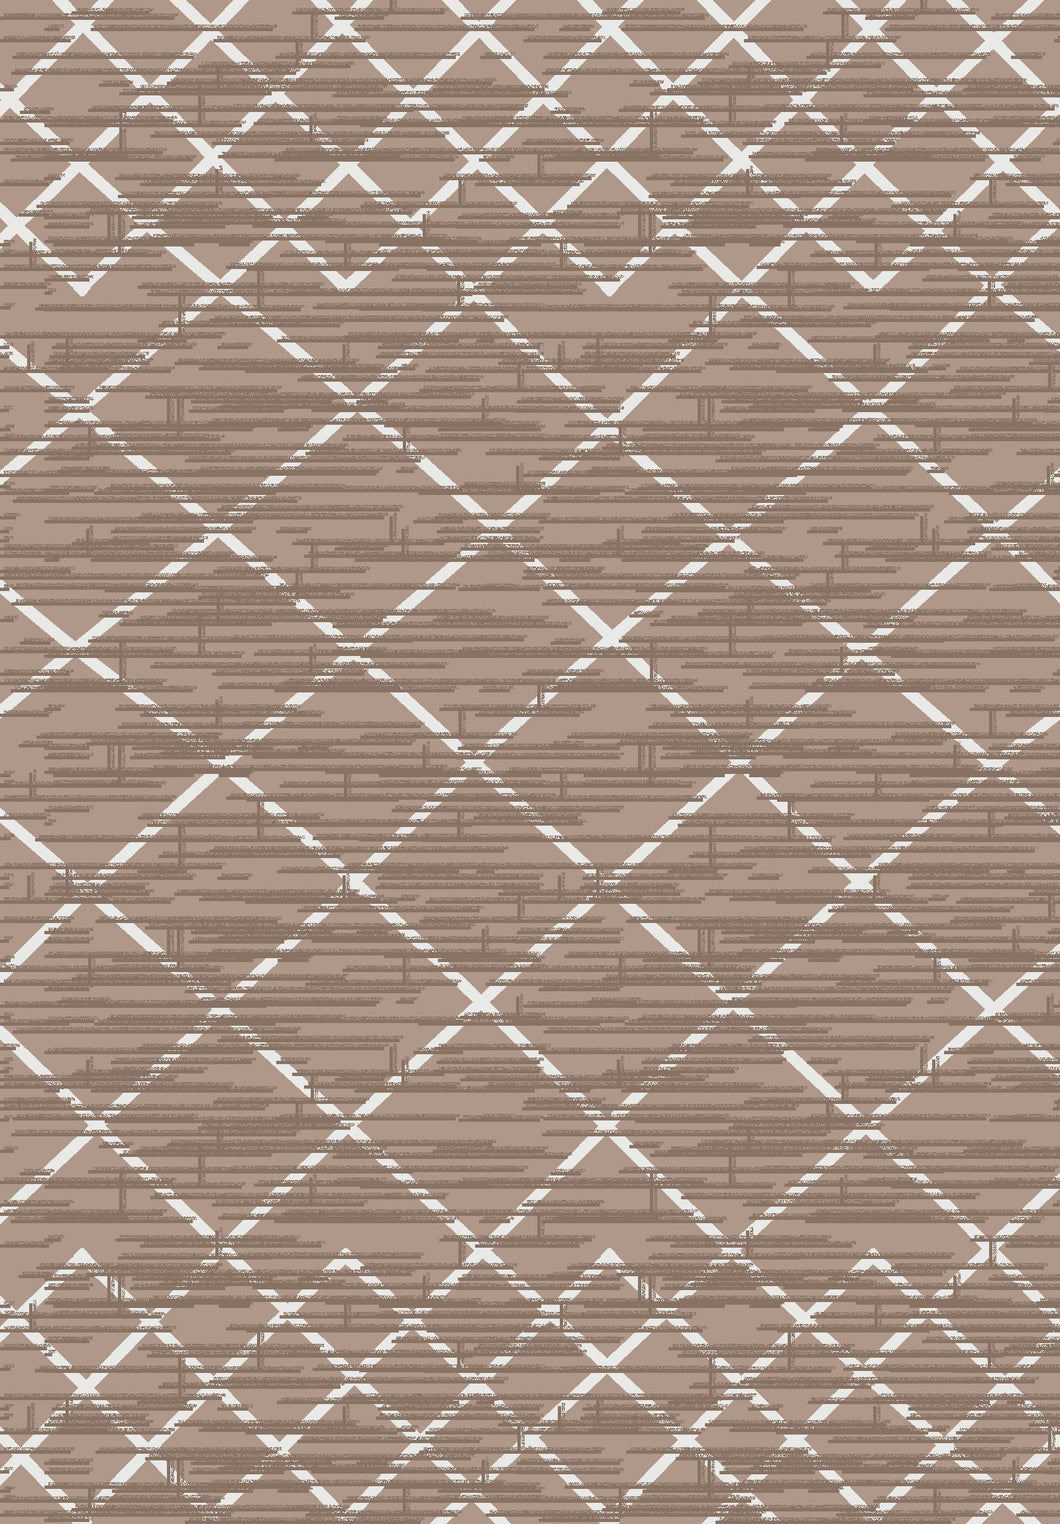 Metro 309 Rug in Brown Colour | Cheap Rug Brisbane